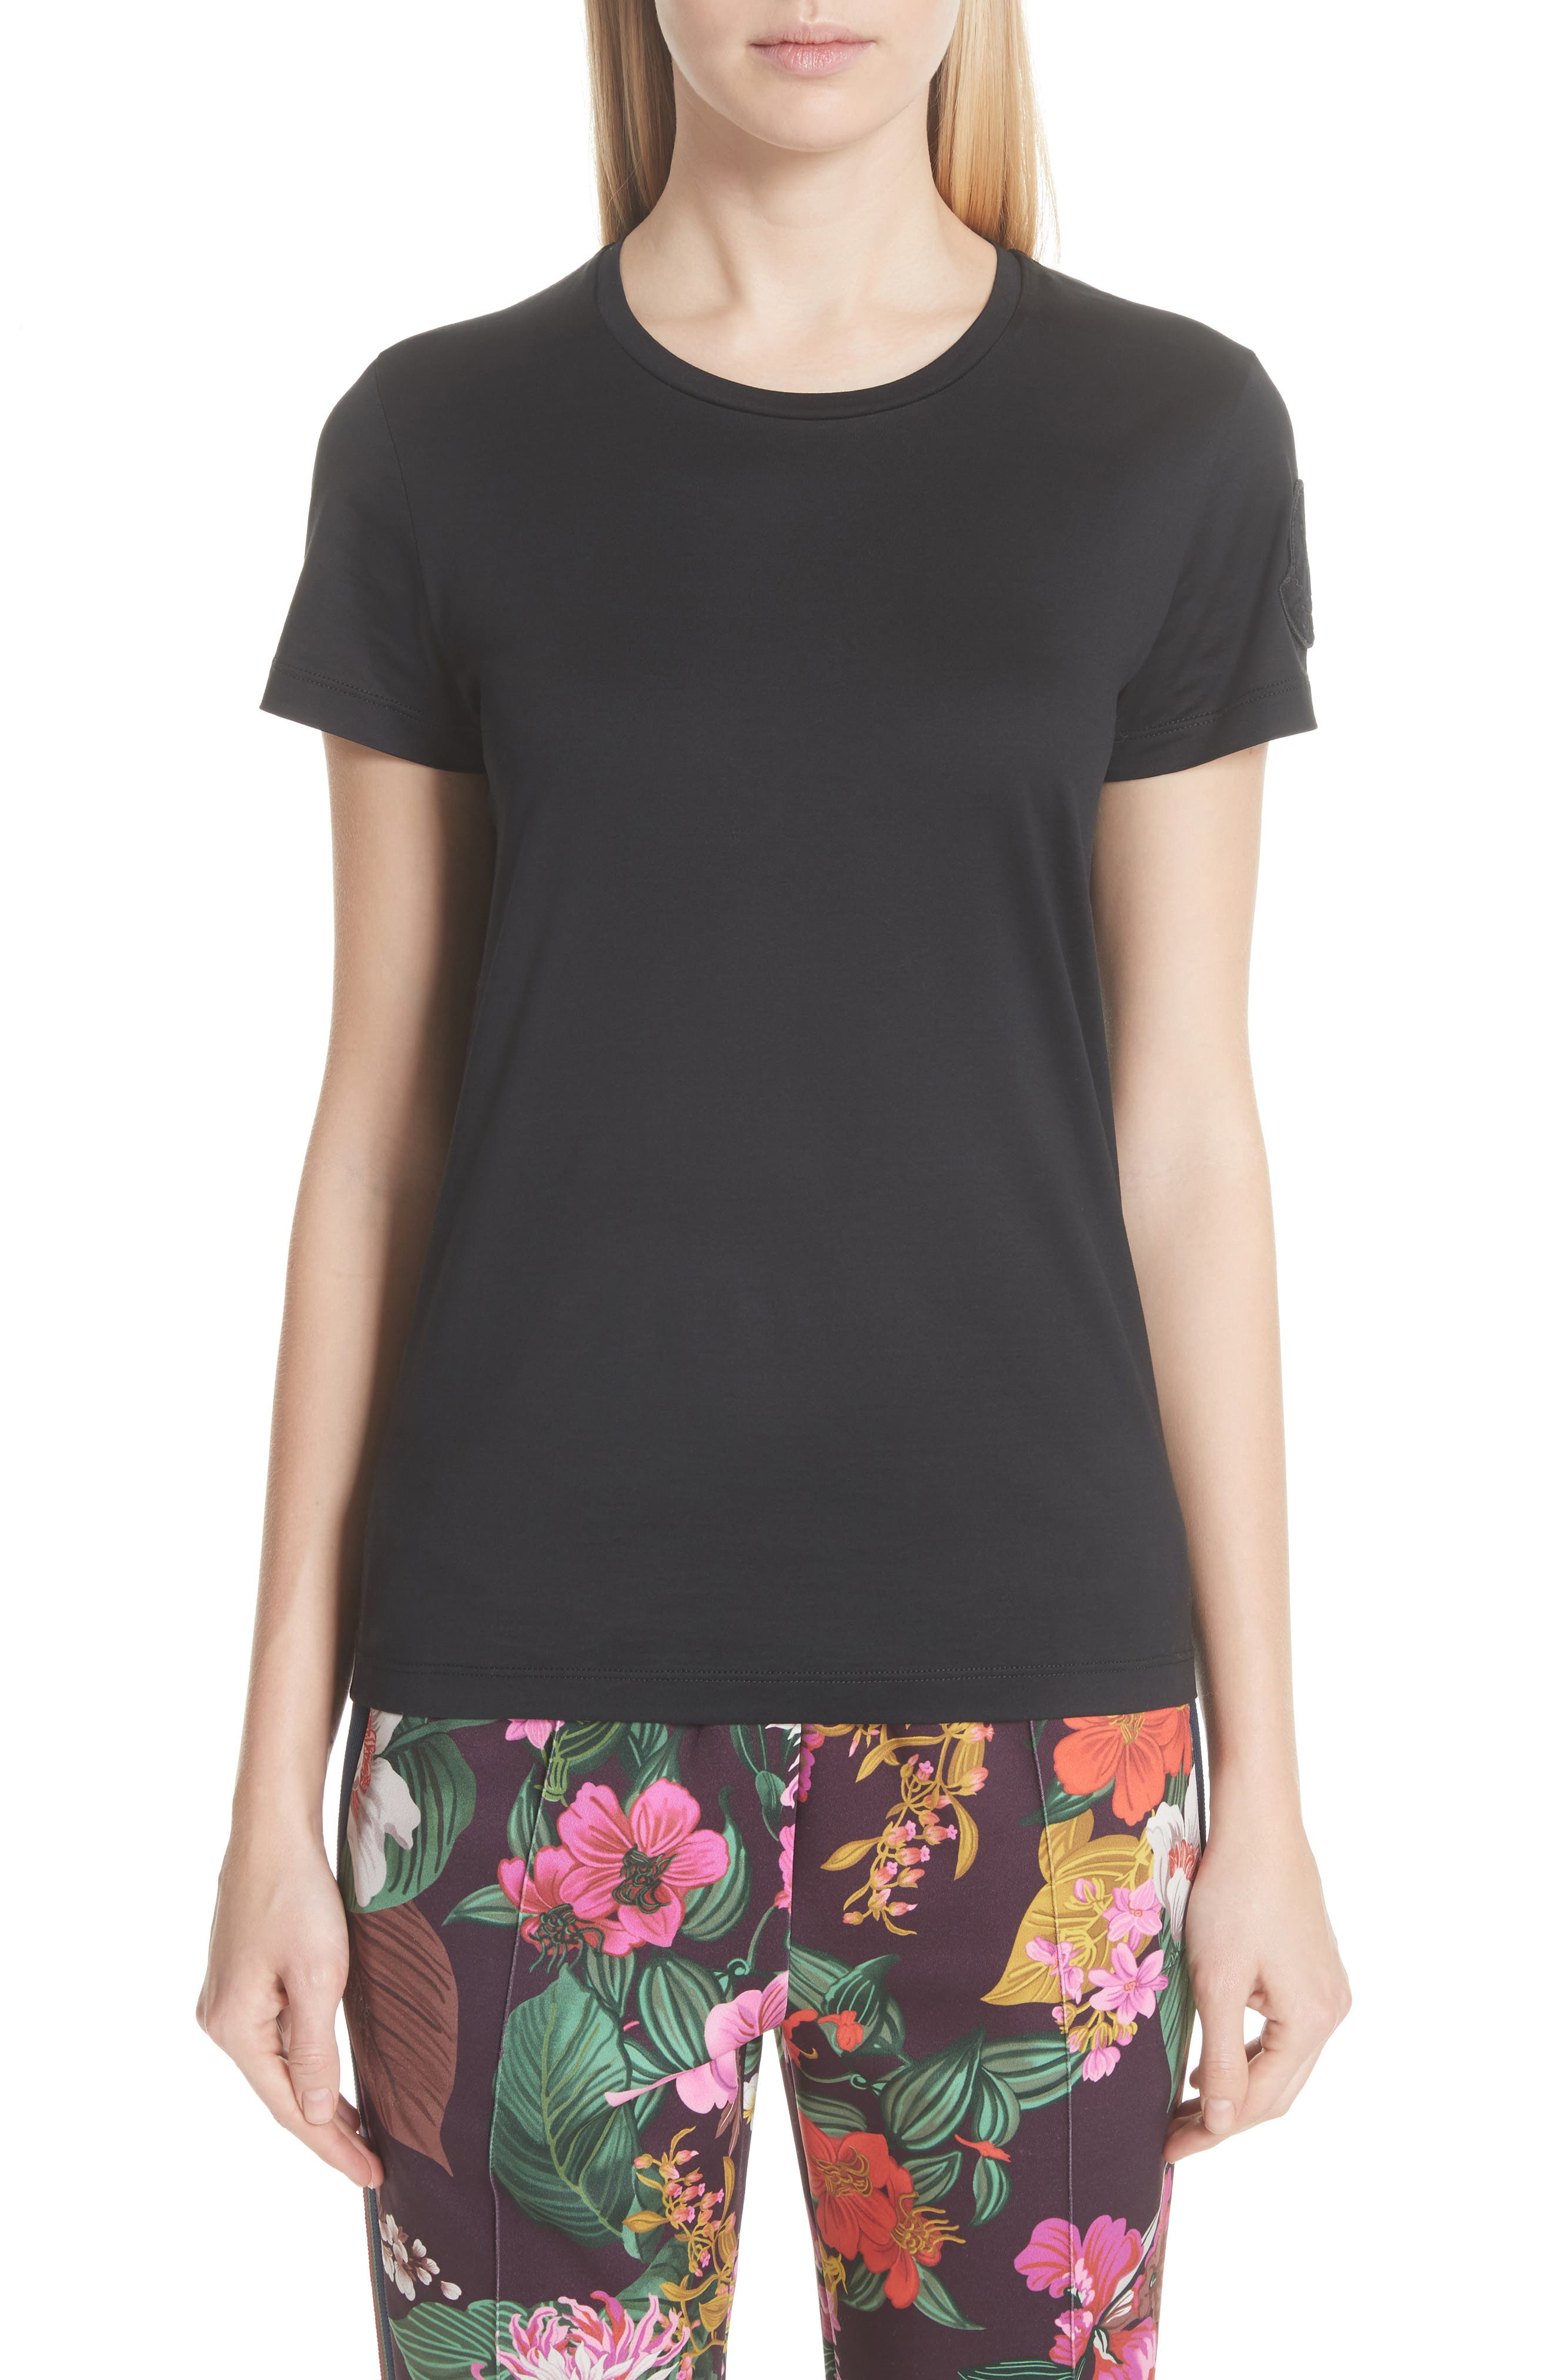 COTTON TEE from Nordstrom